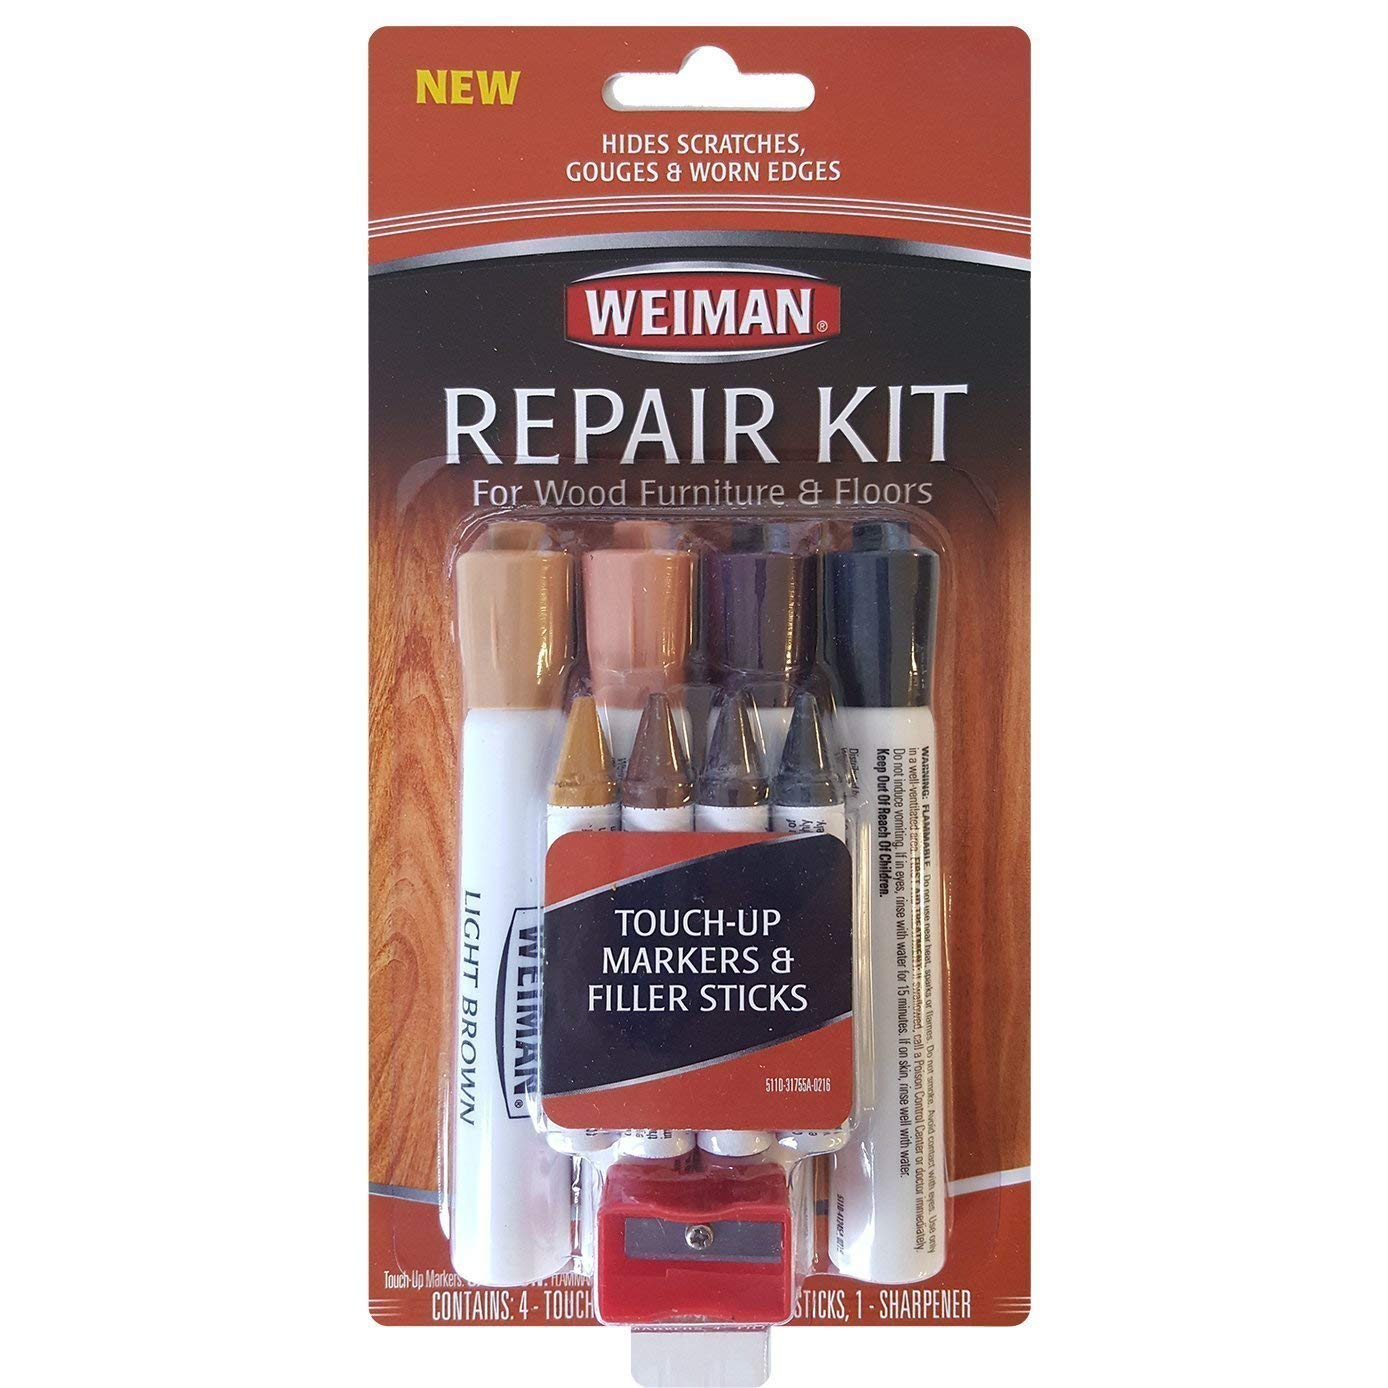 Weiman Repair Kit (4 Filler Sticks & 4 Touch up Markers) 3-Pack by Repair